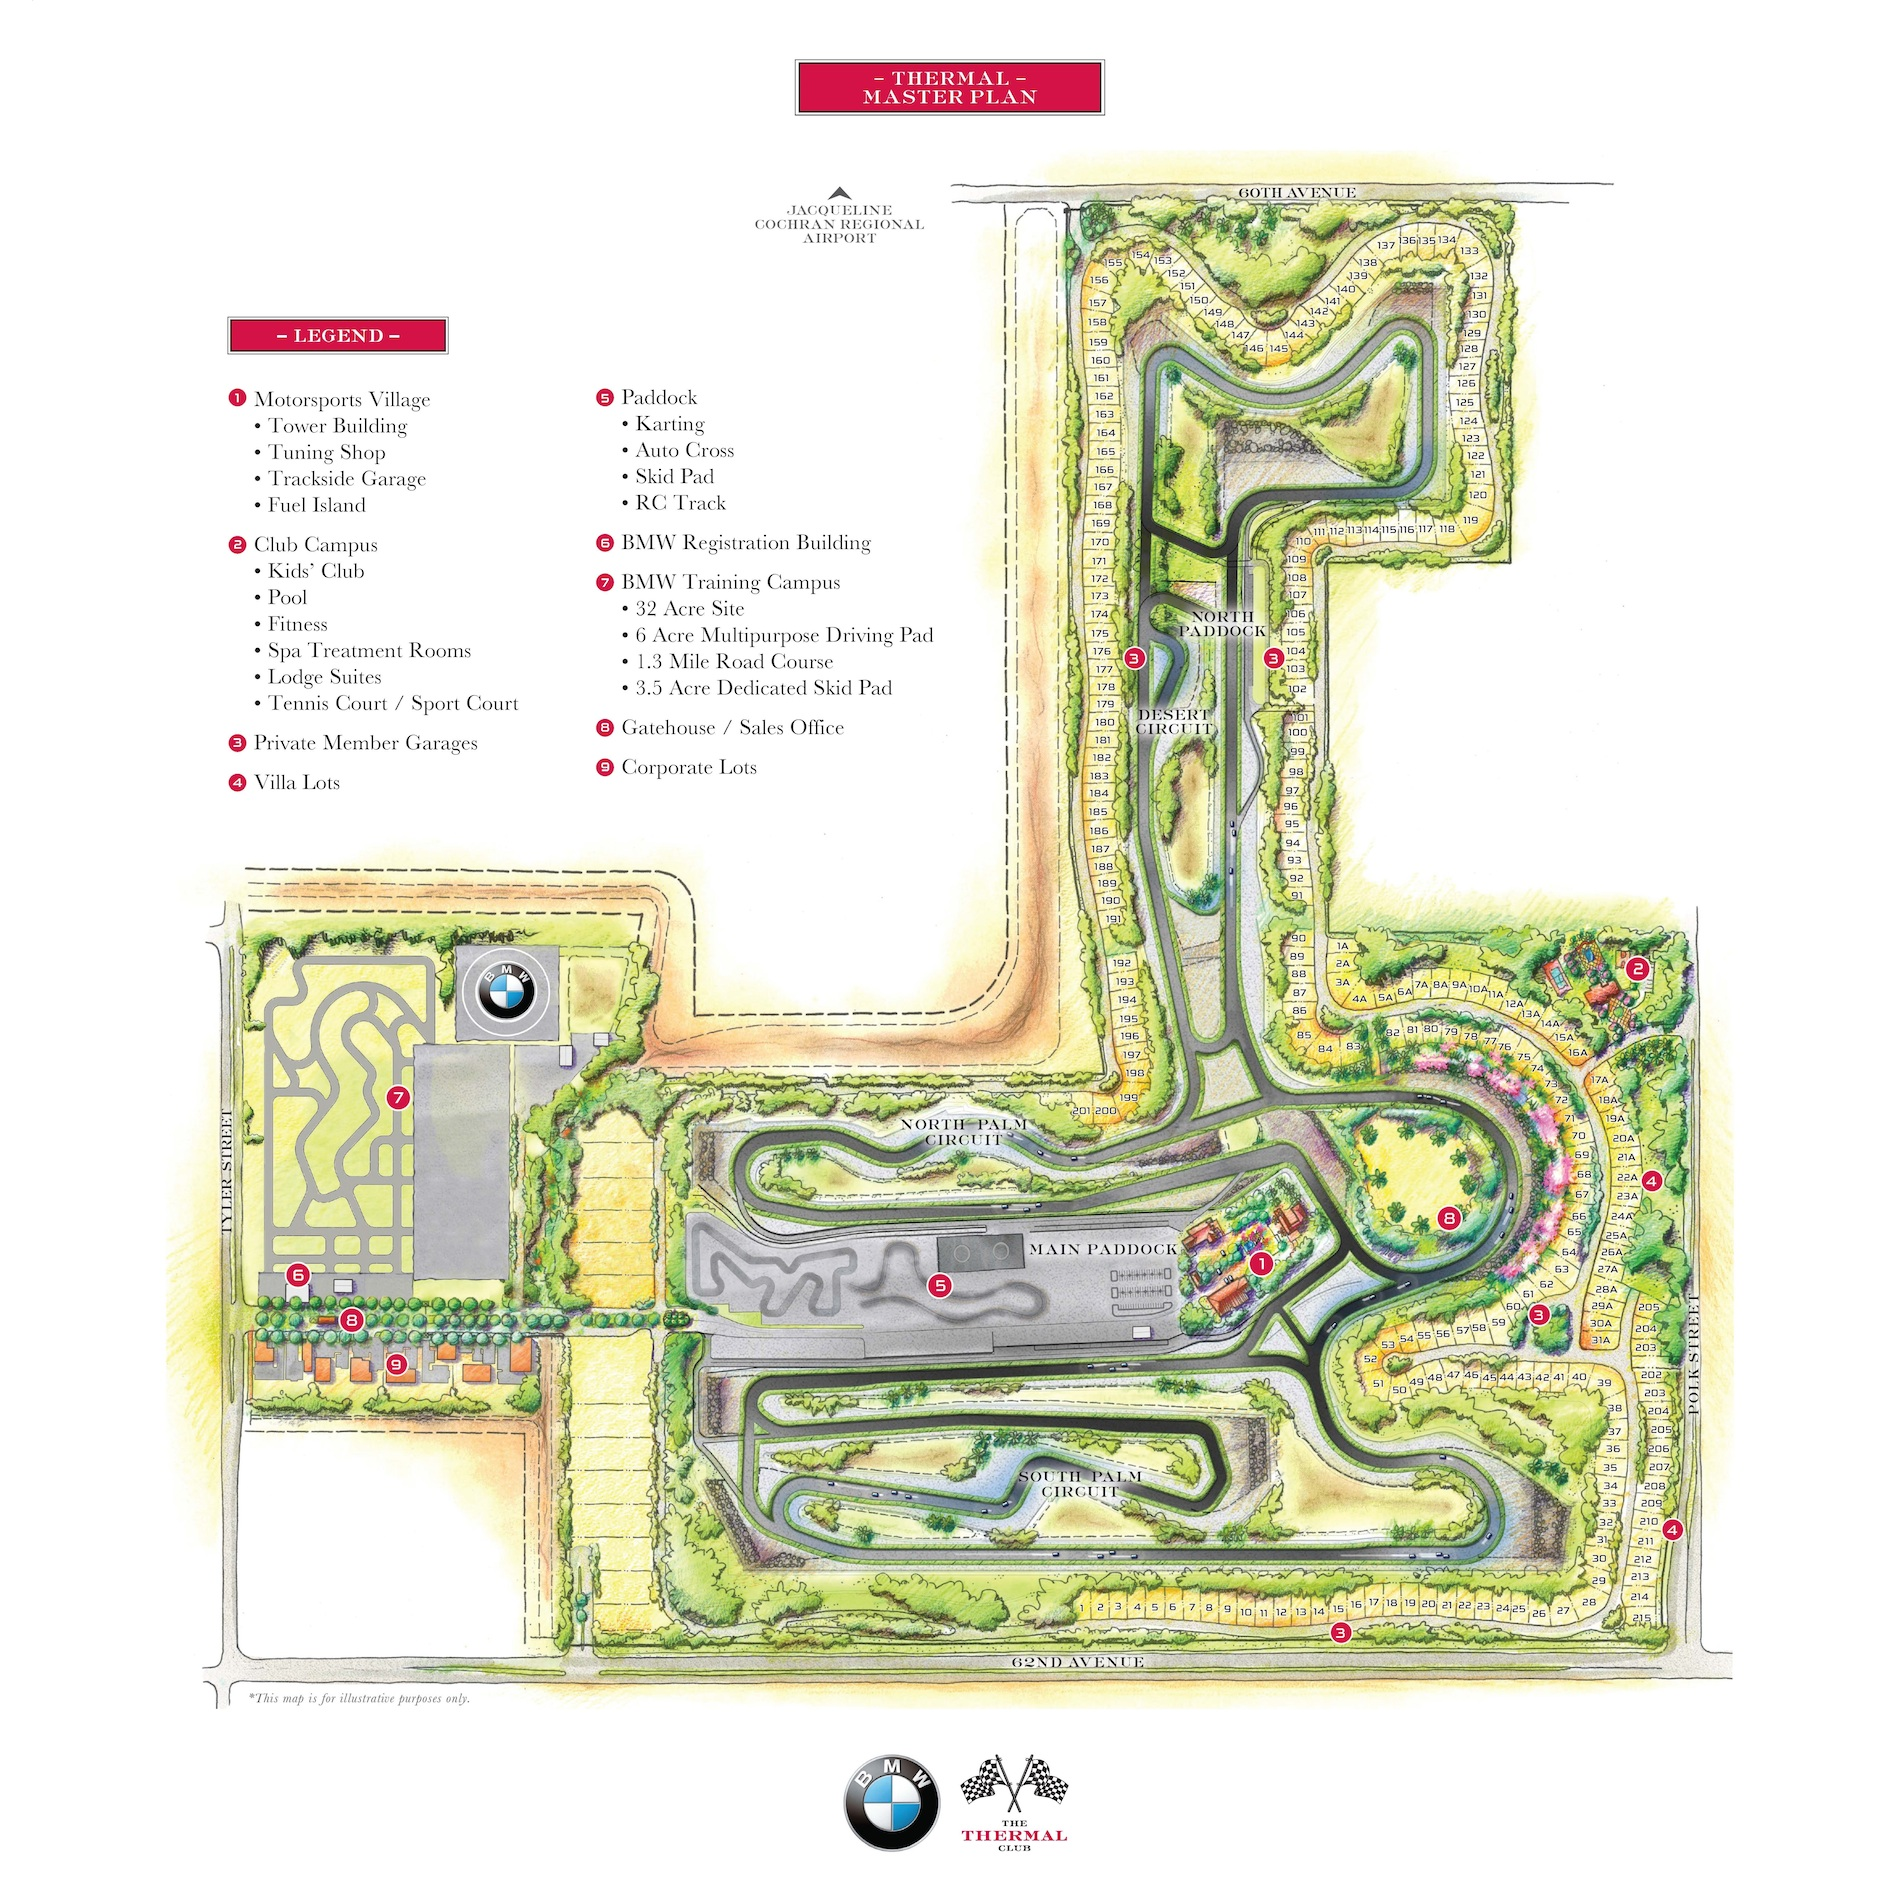 Bmw Driving School >> BMW Performance Center West Driving School Announced @ The Thermal Club, CA